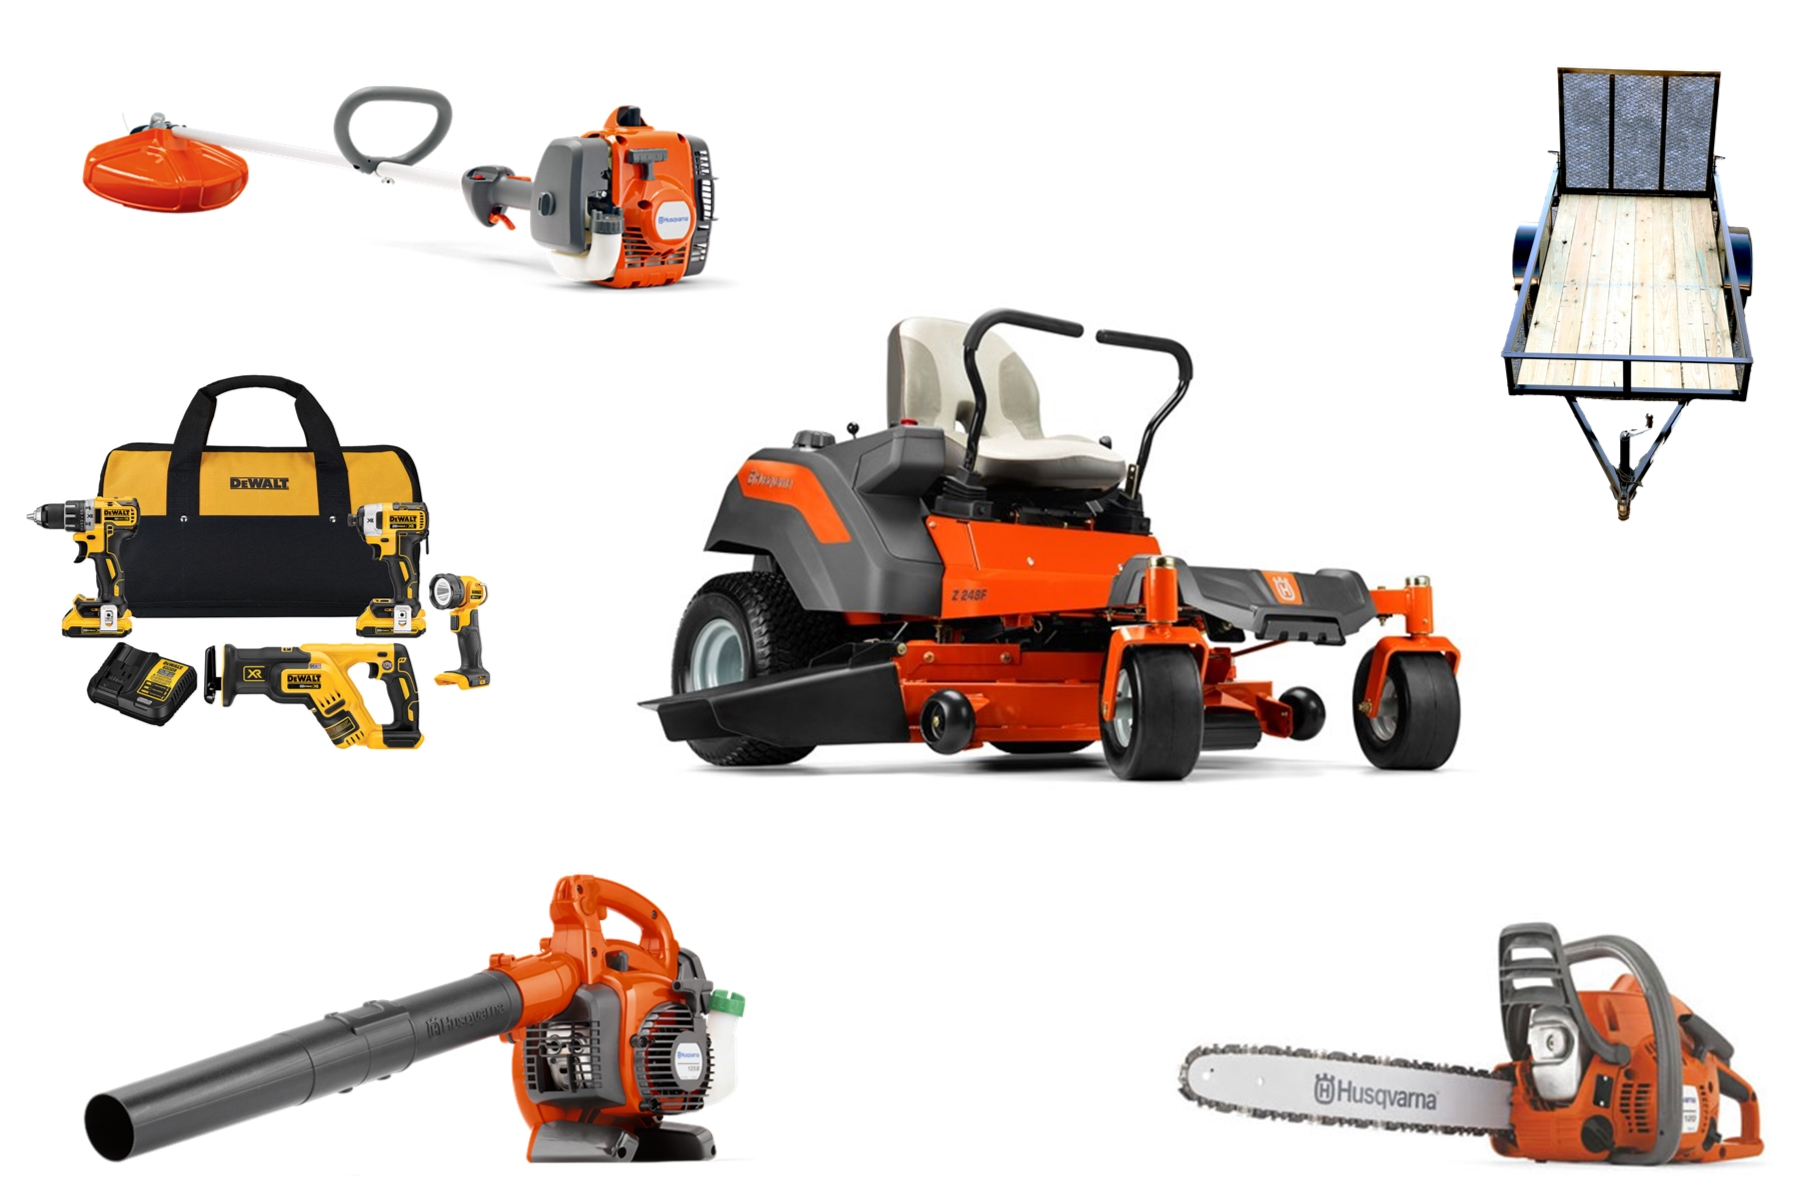 HH4001 Husqvarna Mower Bundle - Z248F Zero Turn 129L Trimmer 120 II Chainsaw